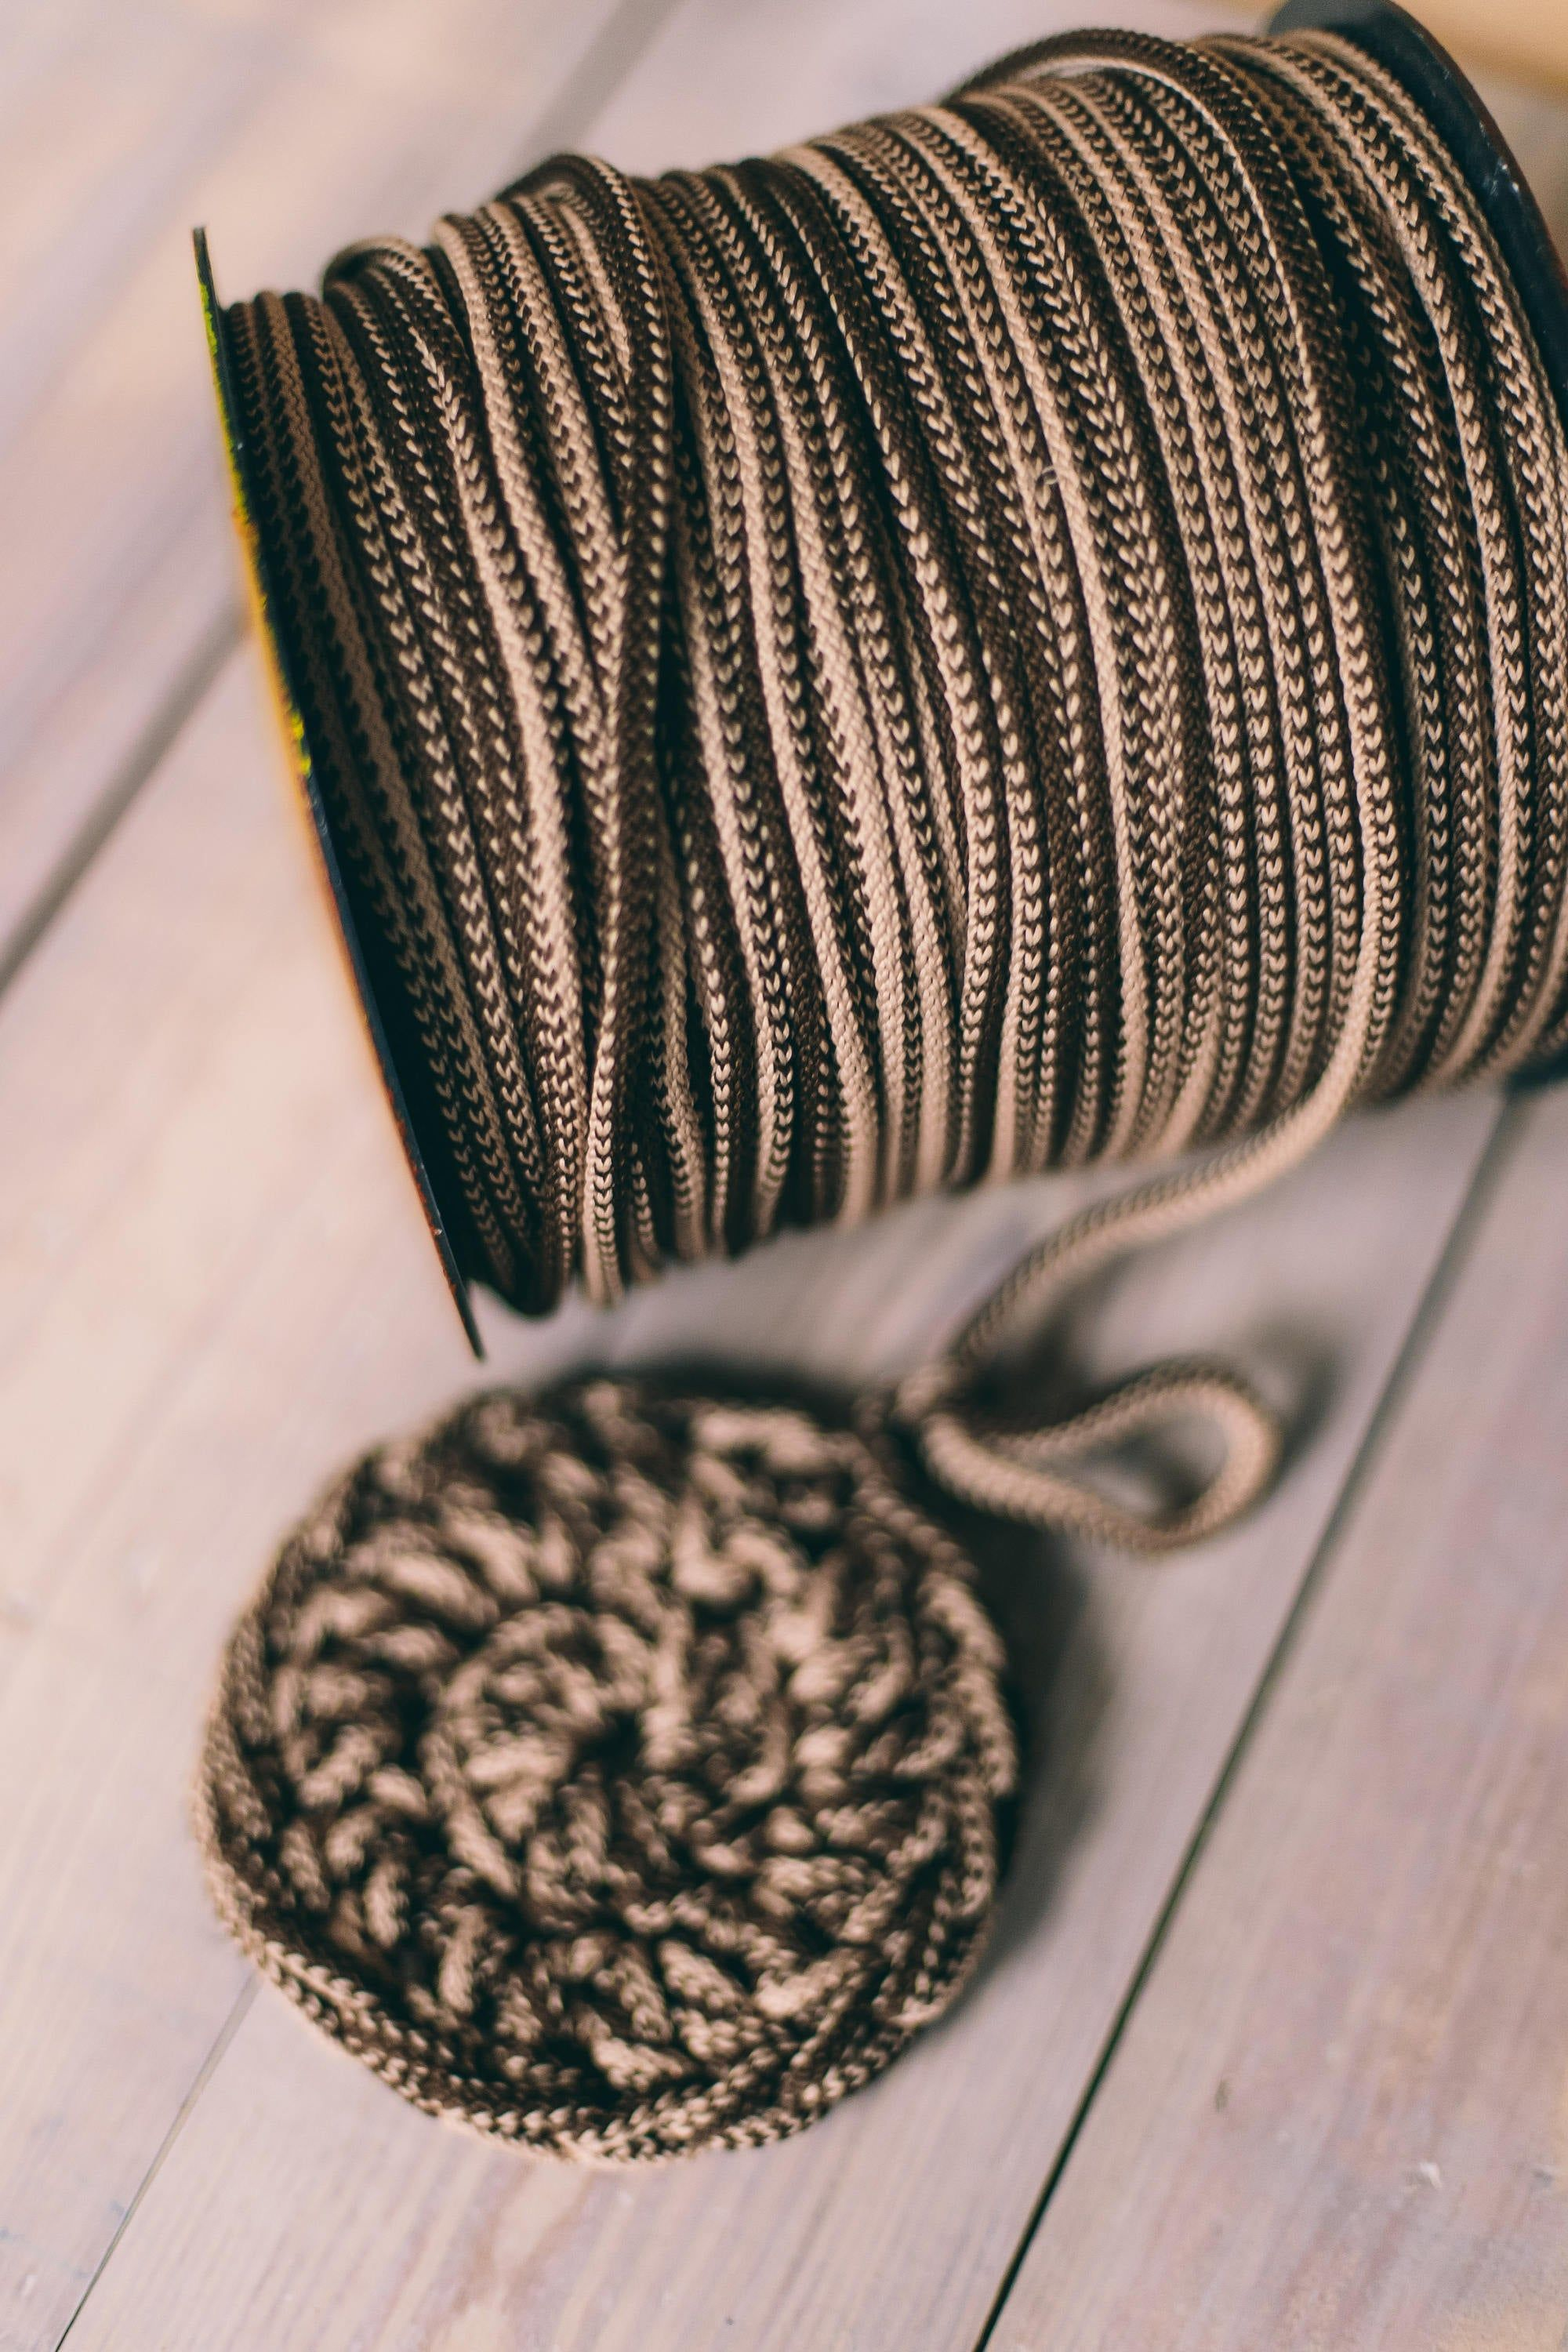 Mixed Brown Yarn Macrame Cord Craft Supplies Diy Projects